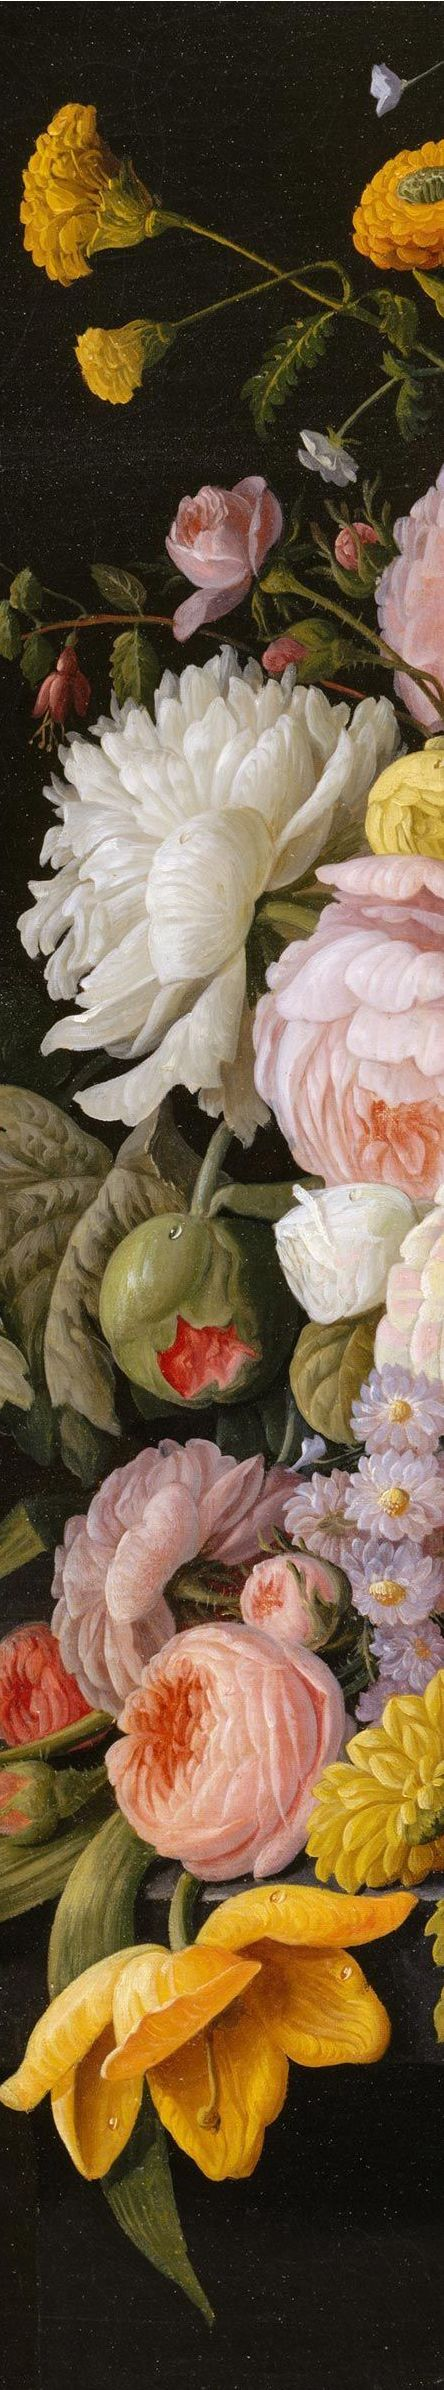 Detail of floral still life painting by Severin Roesen (1815-1872)